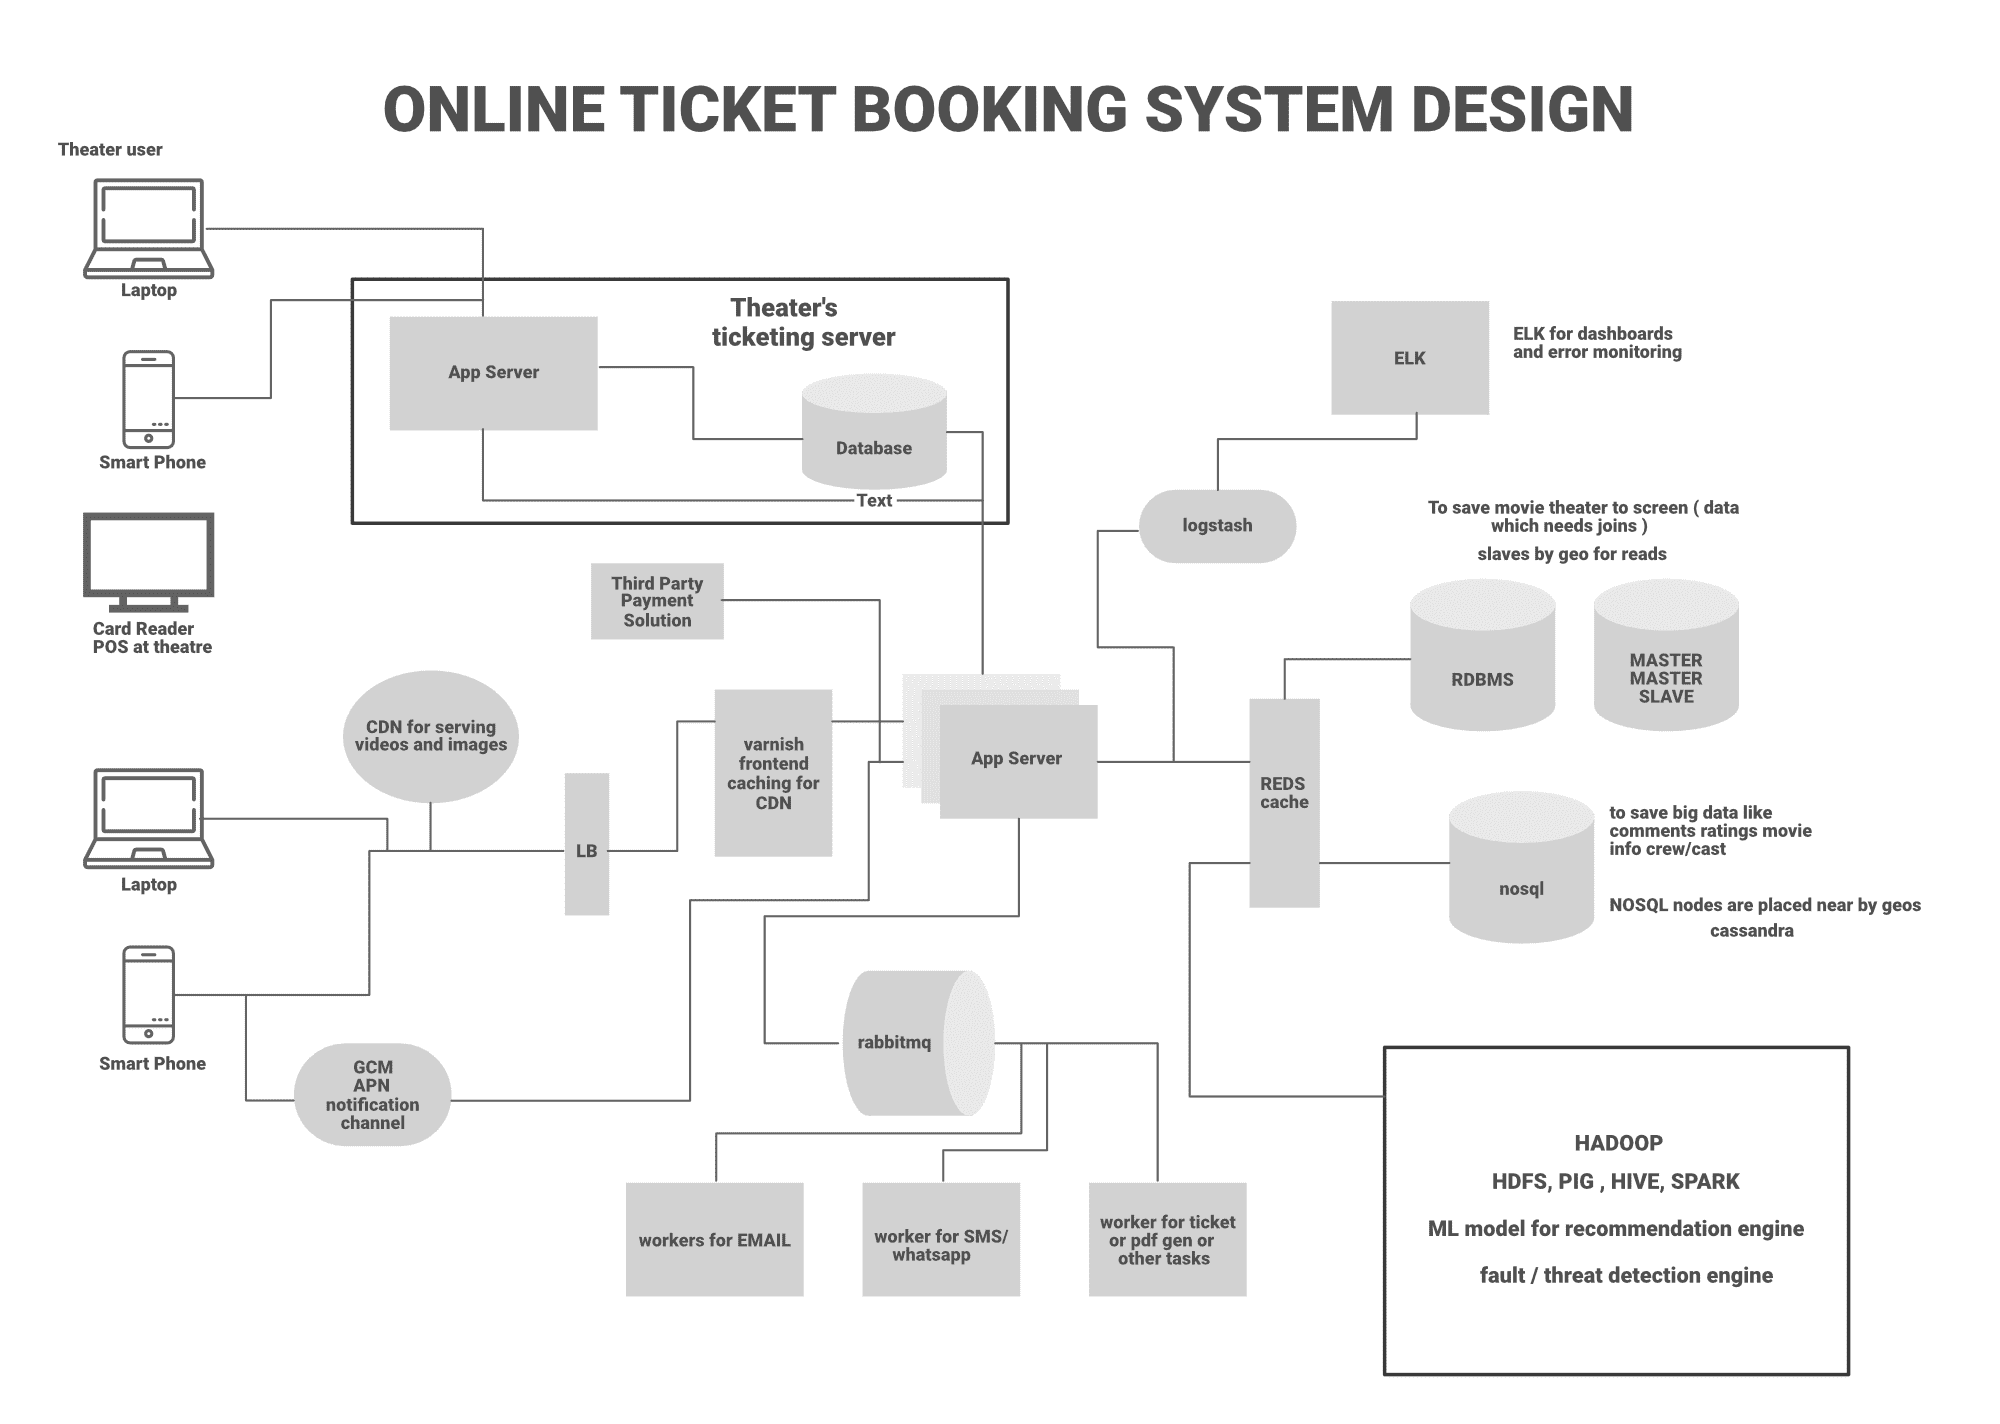 online ticket booking system design - book my show system design